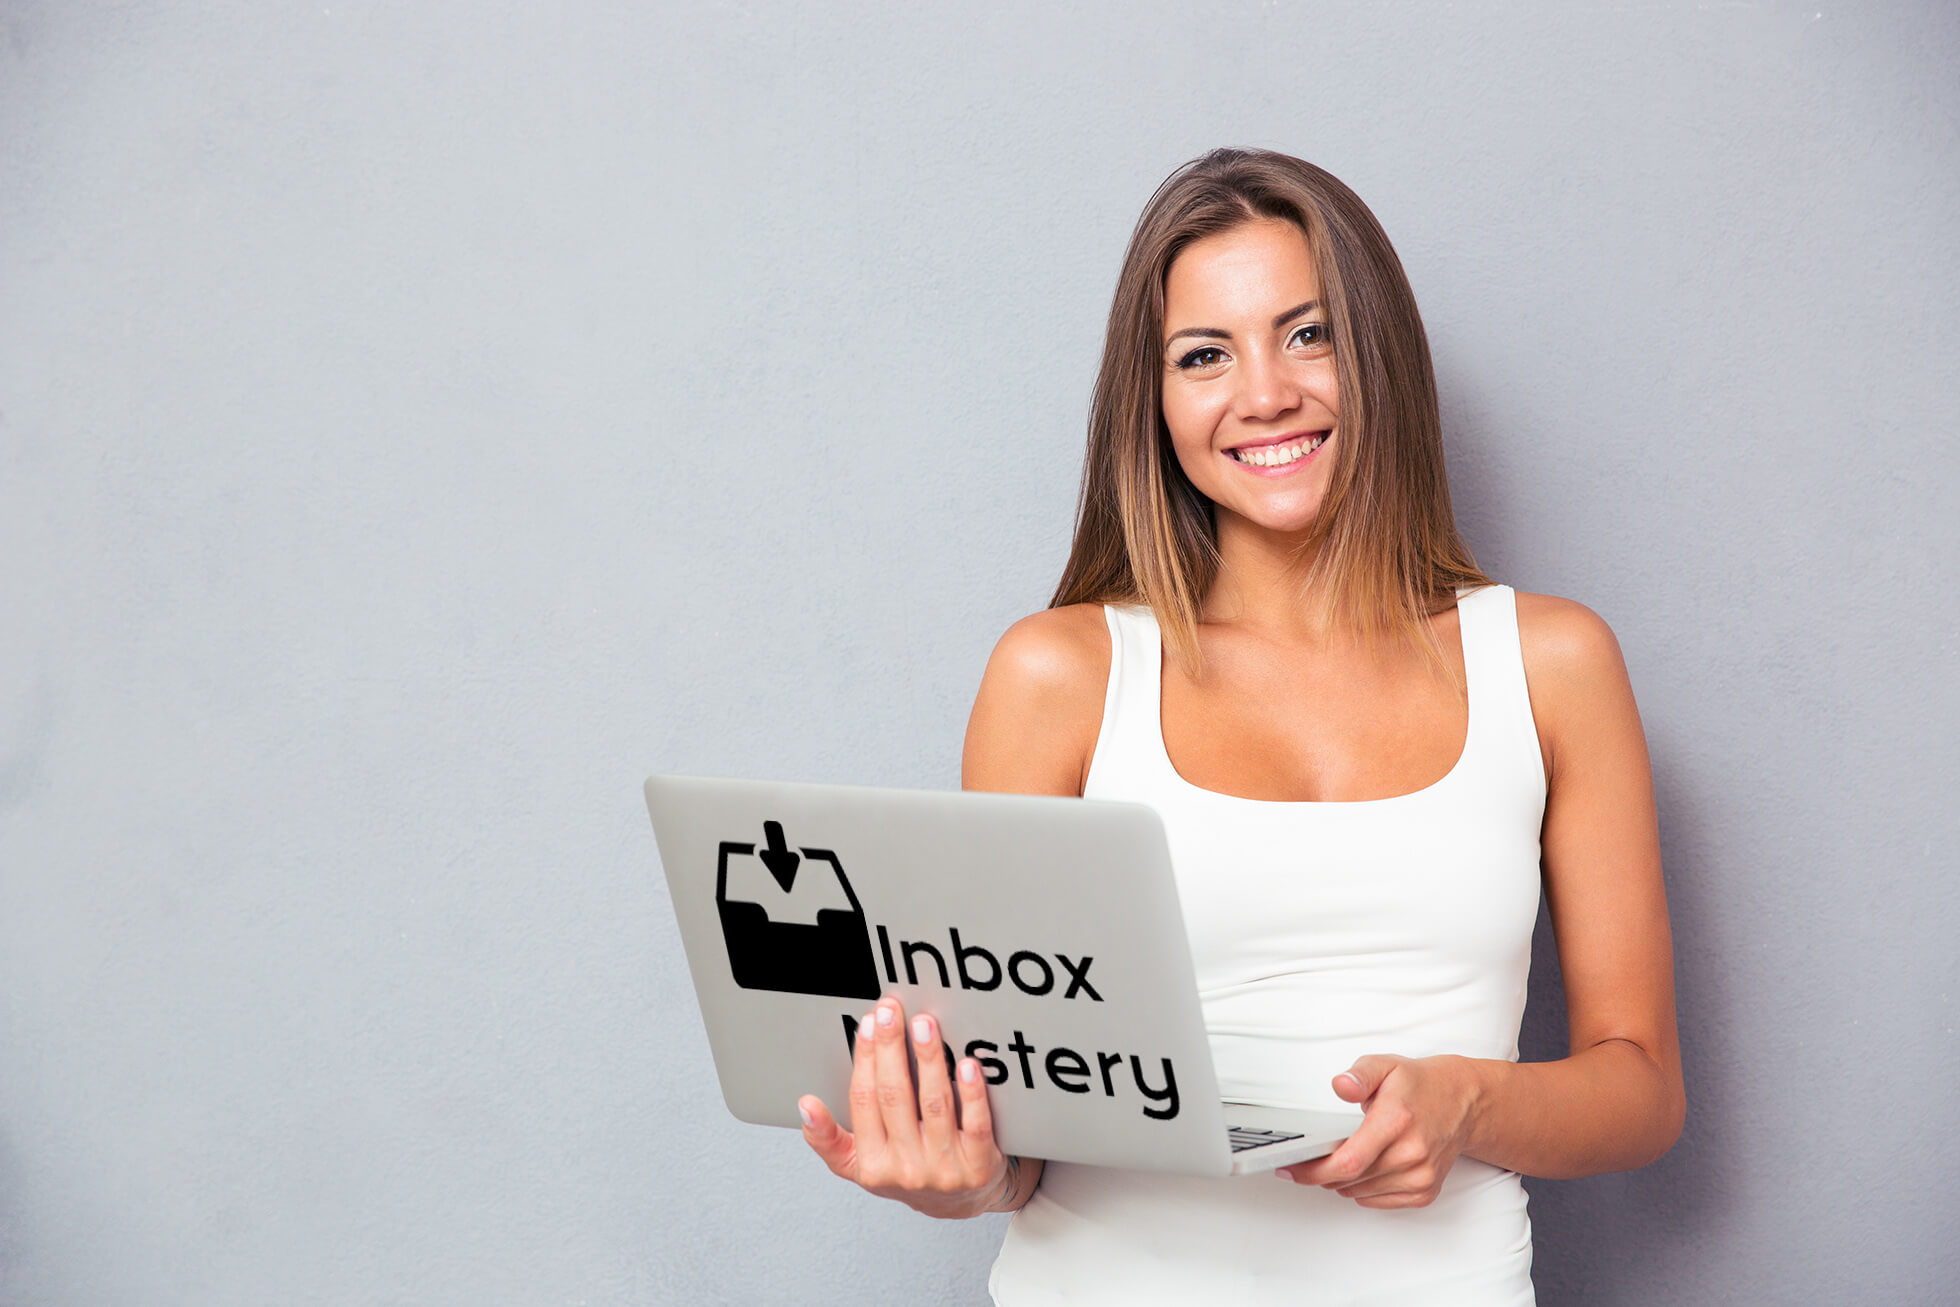 Inbox Mastery Email Course